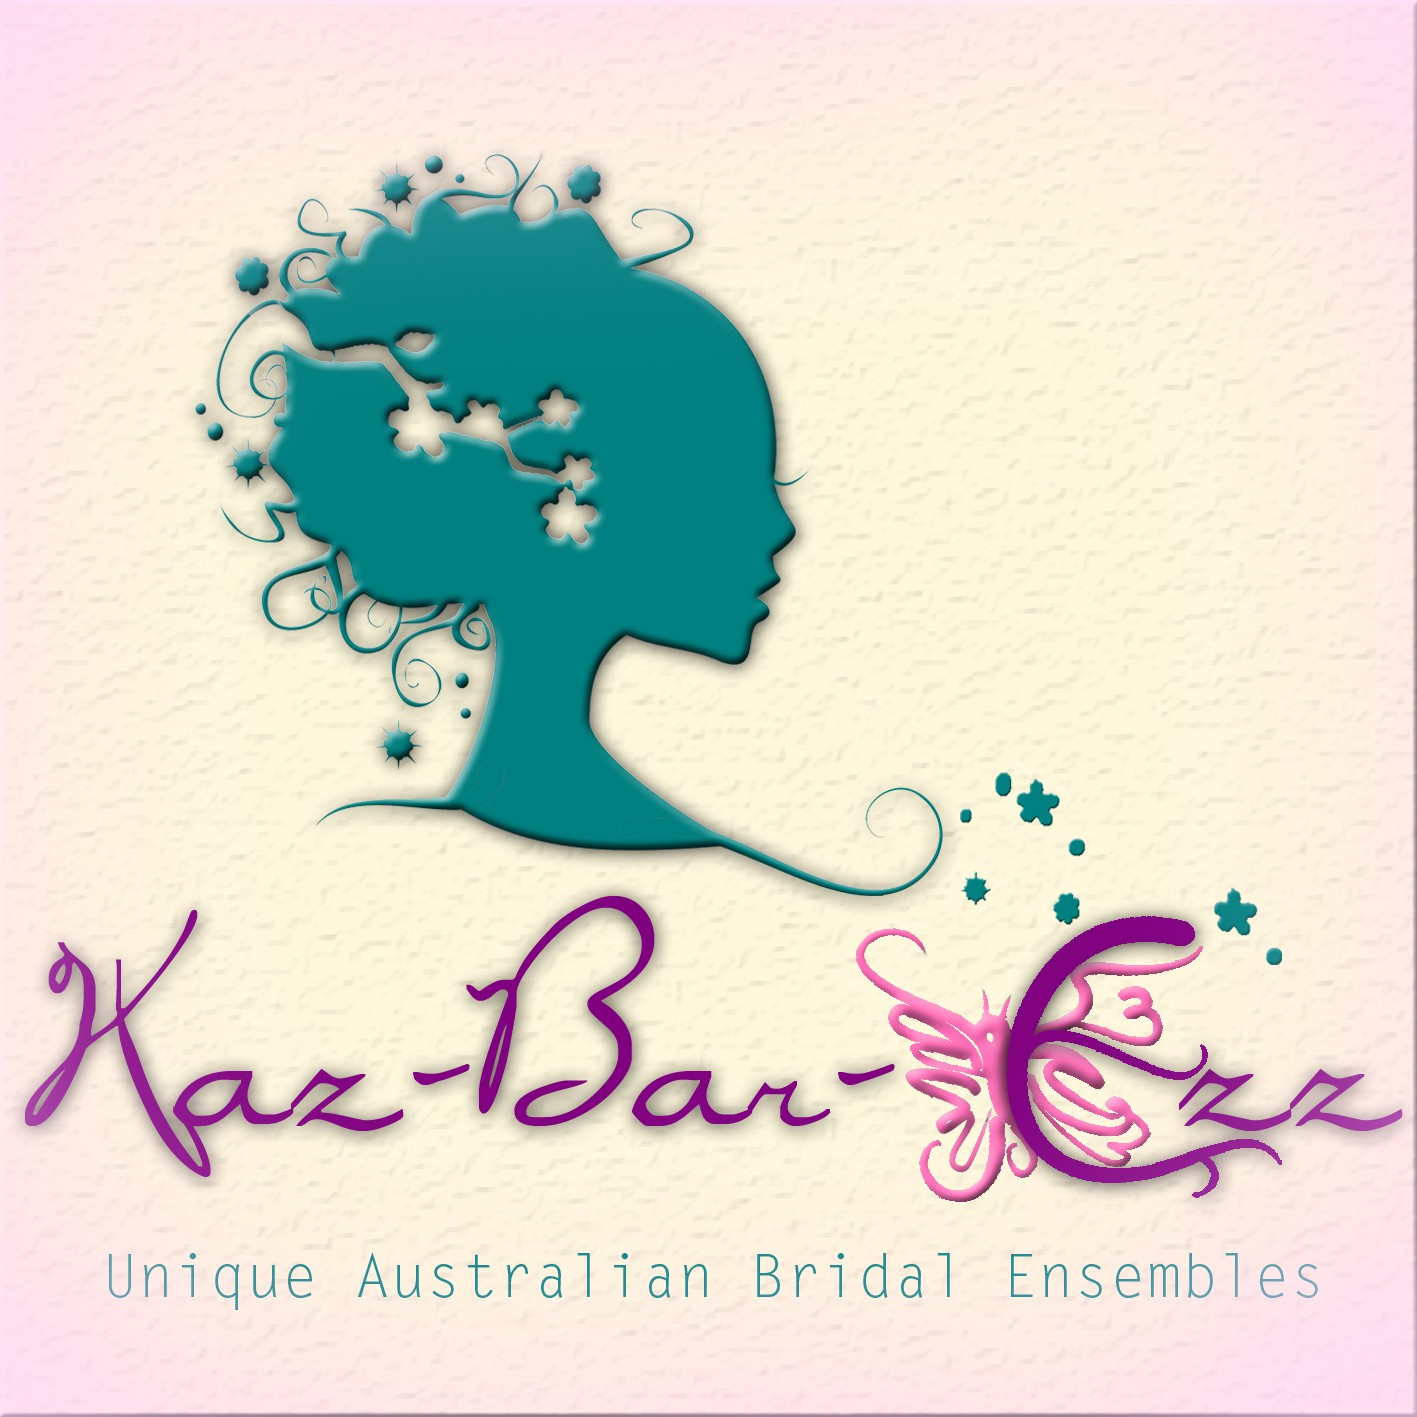 New logo wanted for Kaz-Bar-Ezz Unique Australian Bridal Ensembles